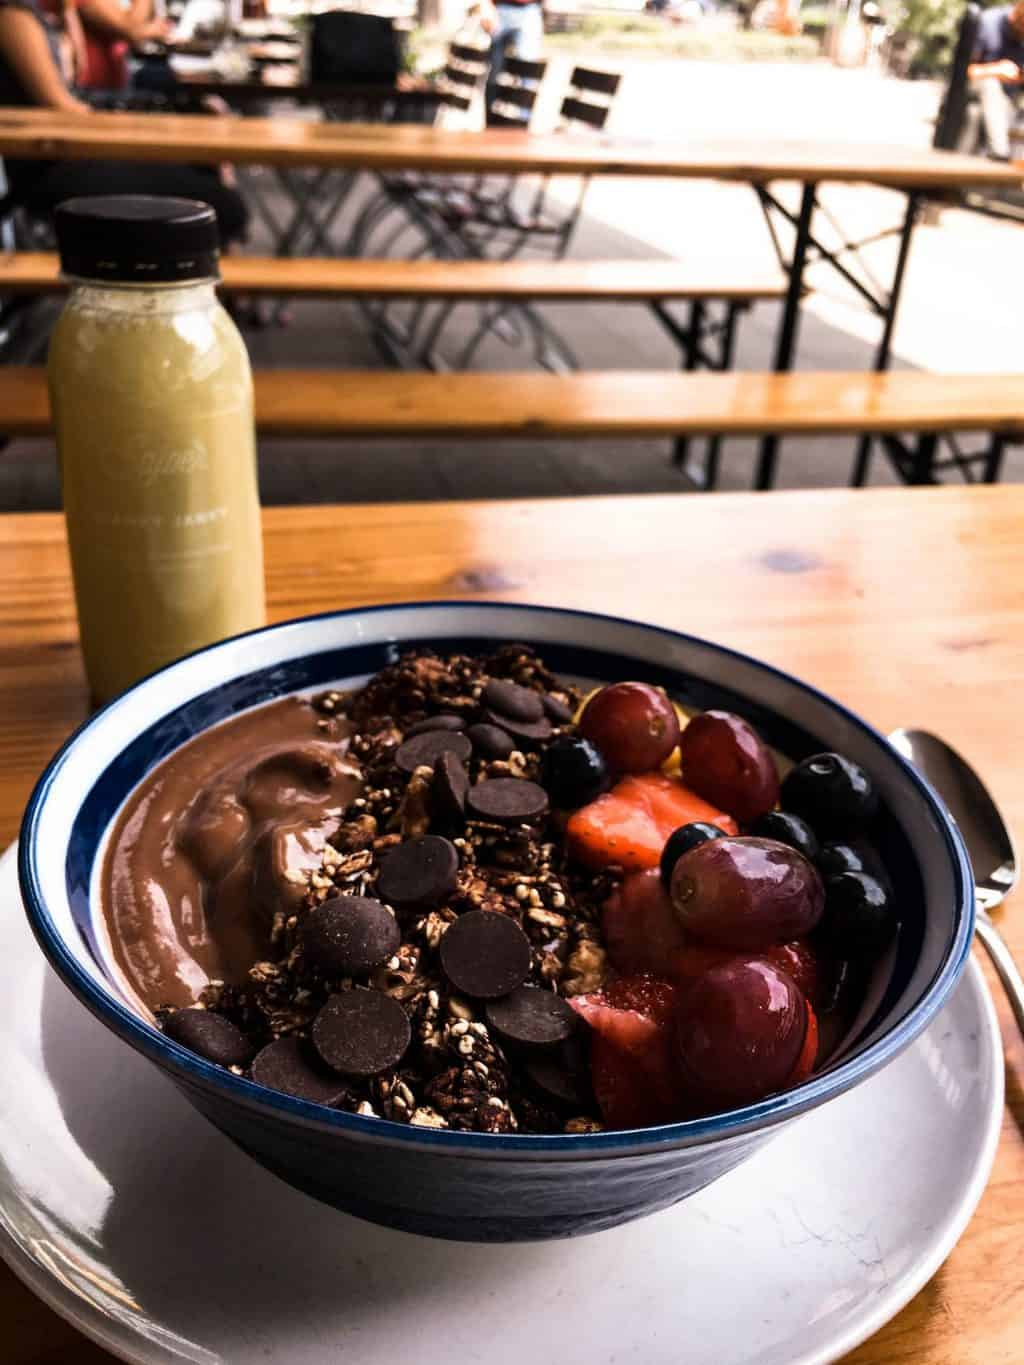 Delicious smoothie bowl at Sajoer